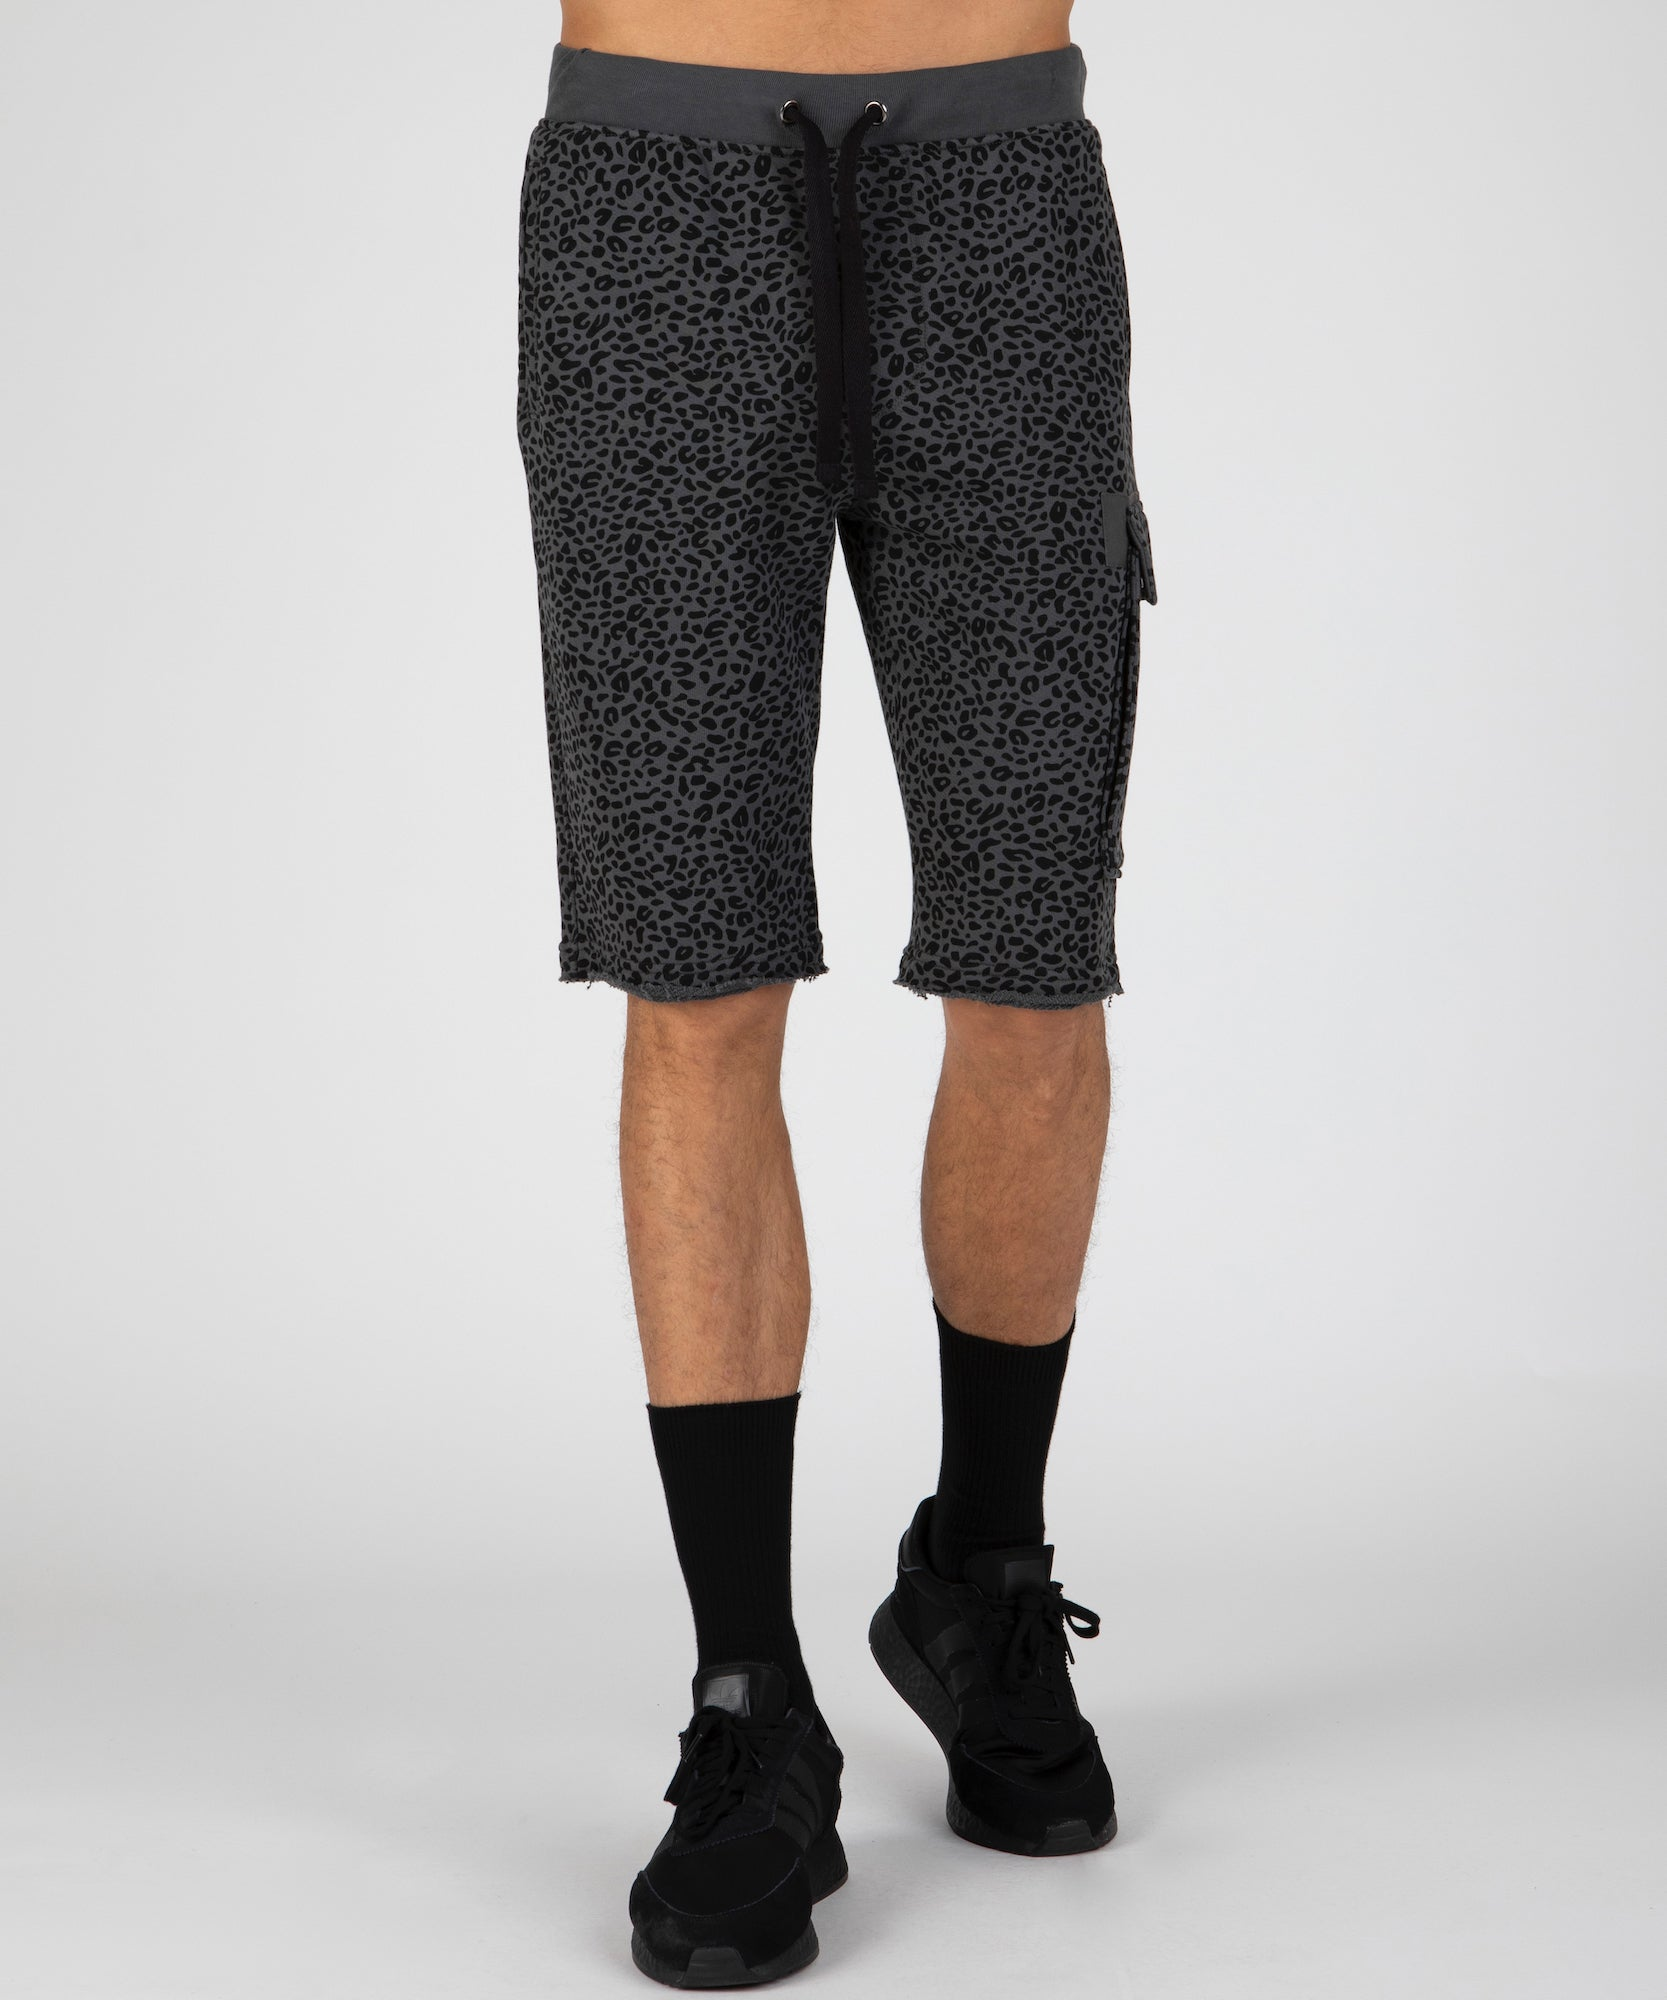 Asphalt and Black French Terry Mini Animal Print Shorts - Men's Luxe Loungewear by ATM Anthony Thomas Melillo